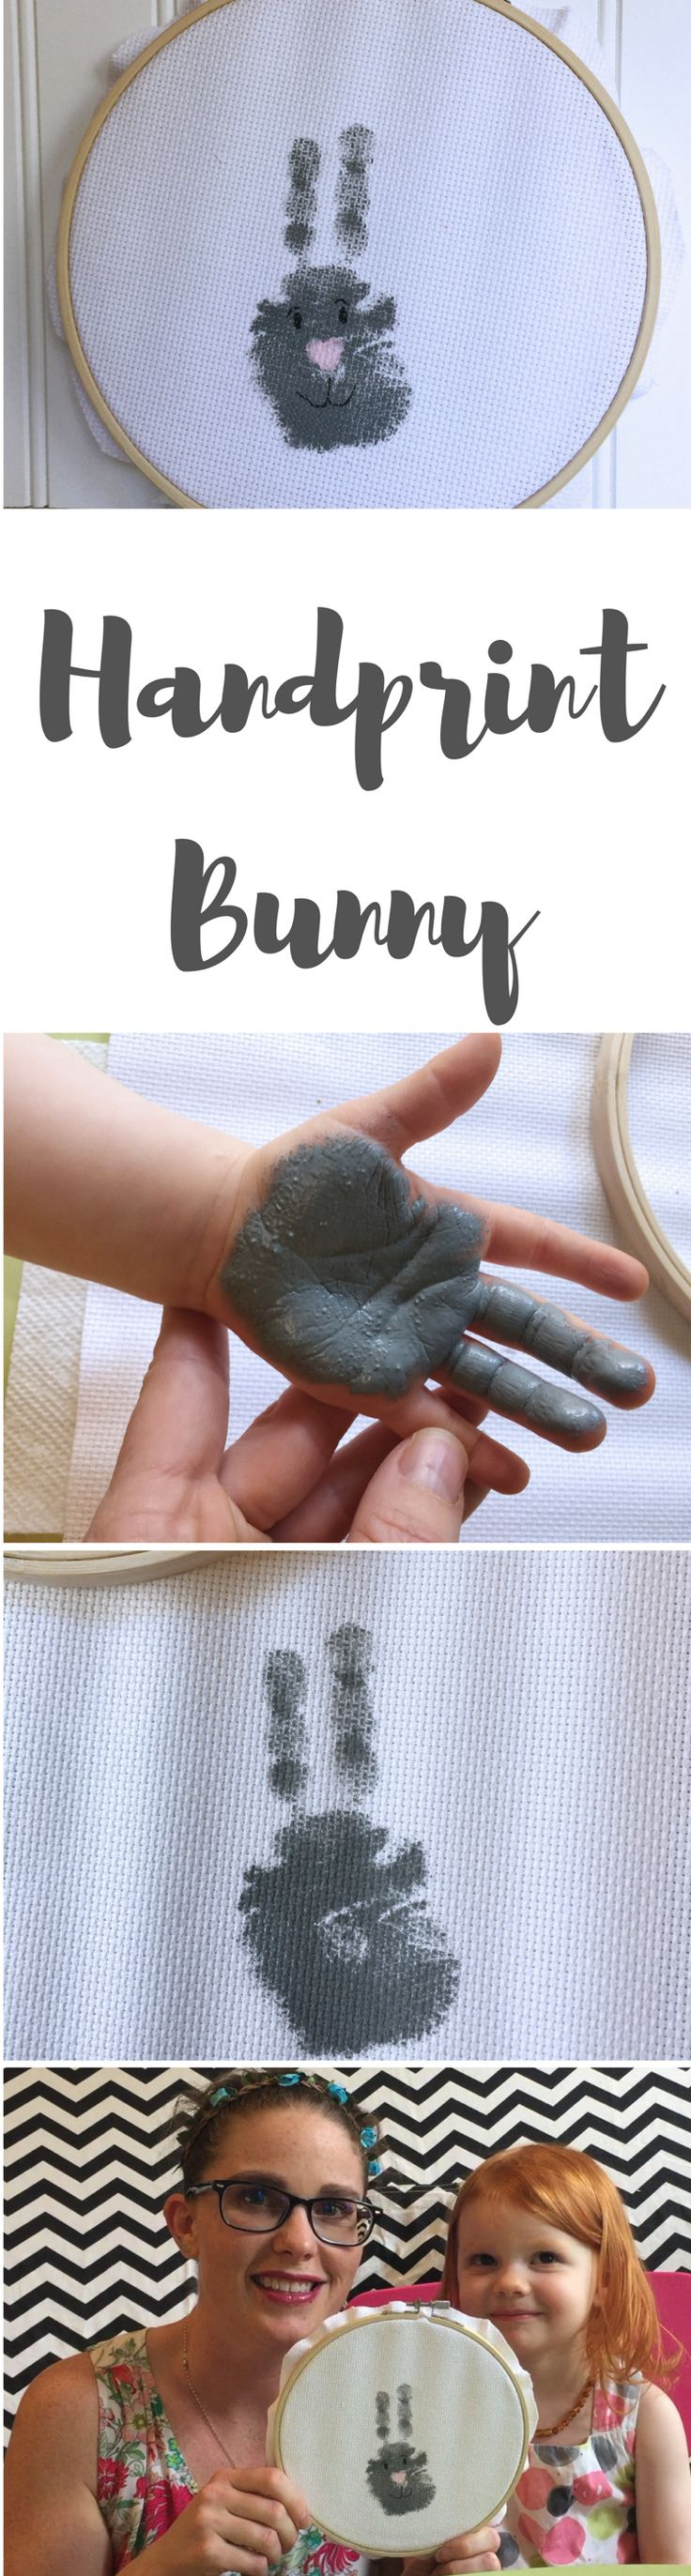 easter craft for toddlers | handprint bunny craft in loop frame for spring and easter